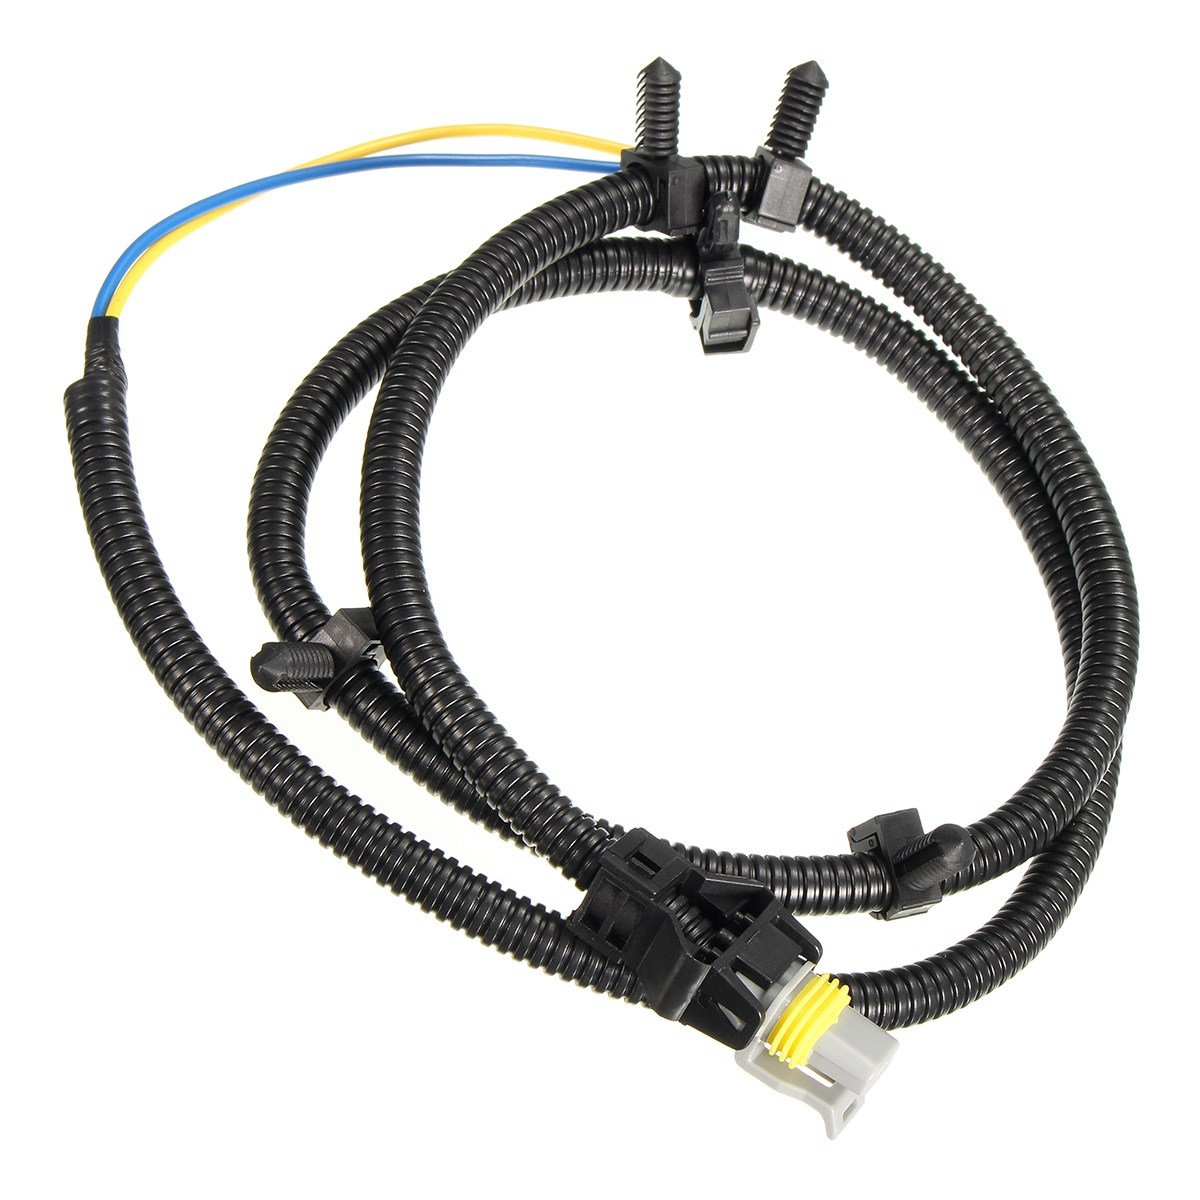 Front Rear ABS Wheel Speed Sensor Wire Harness Plug Pigtail for Buick  /Cadillac /Chevrolet /Pontiac 10340314-in Speed Sensor from Automobiles &  Motorcycles ...